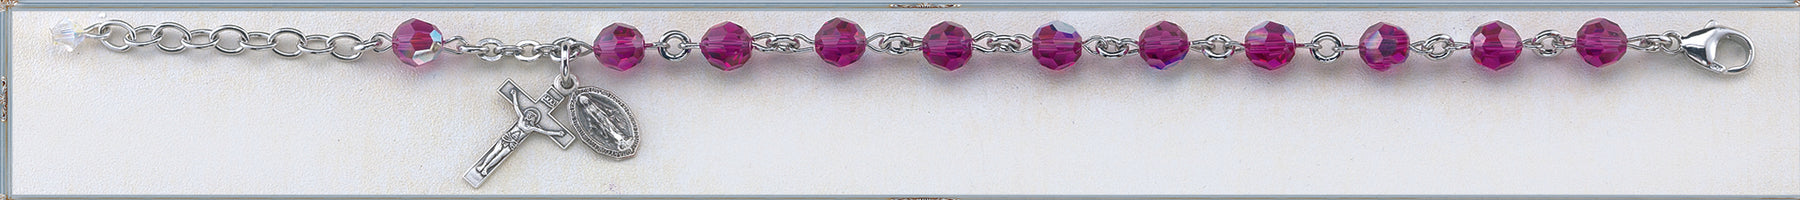 6mm Fuchsia Round Faceted Swarovski Crystal Sterling Bracelet